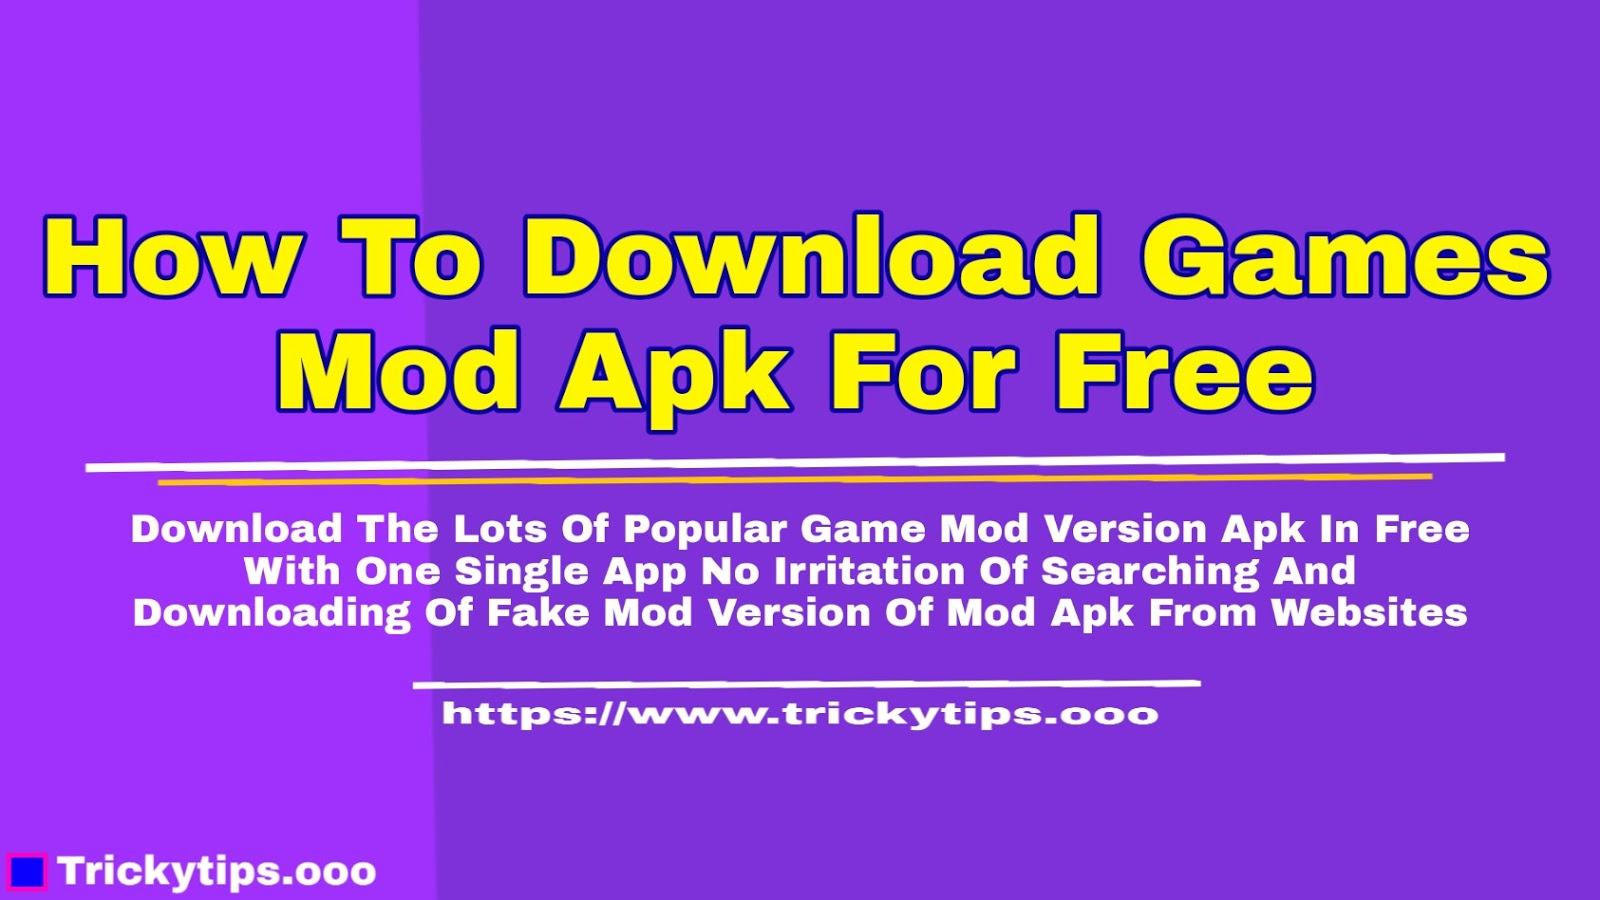 How To Download Games Mod Apk For Free In [Urdu]